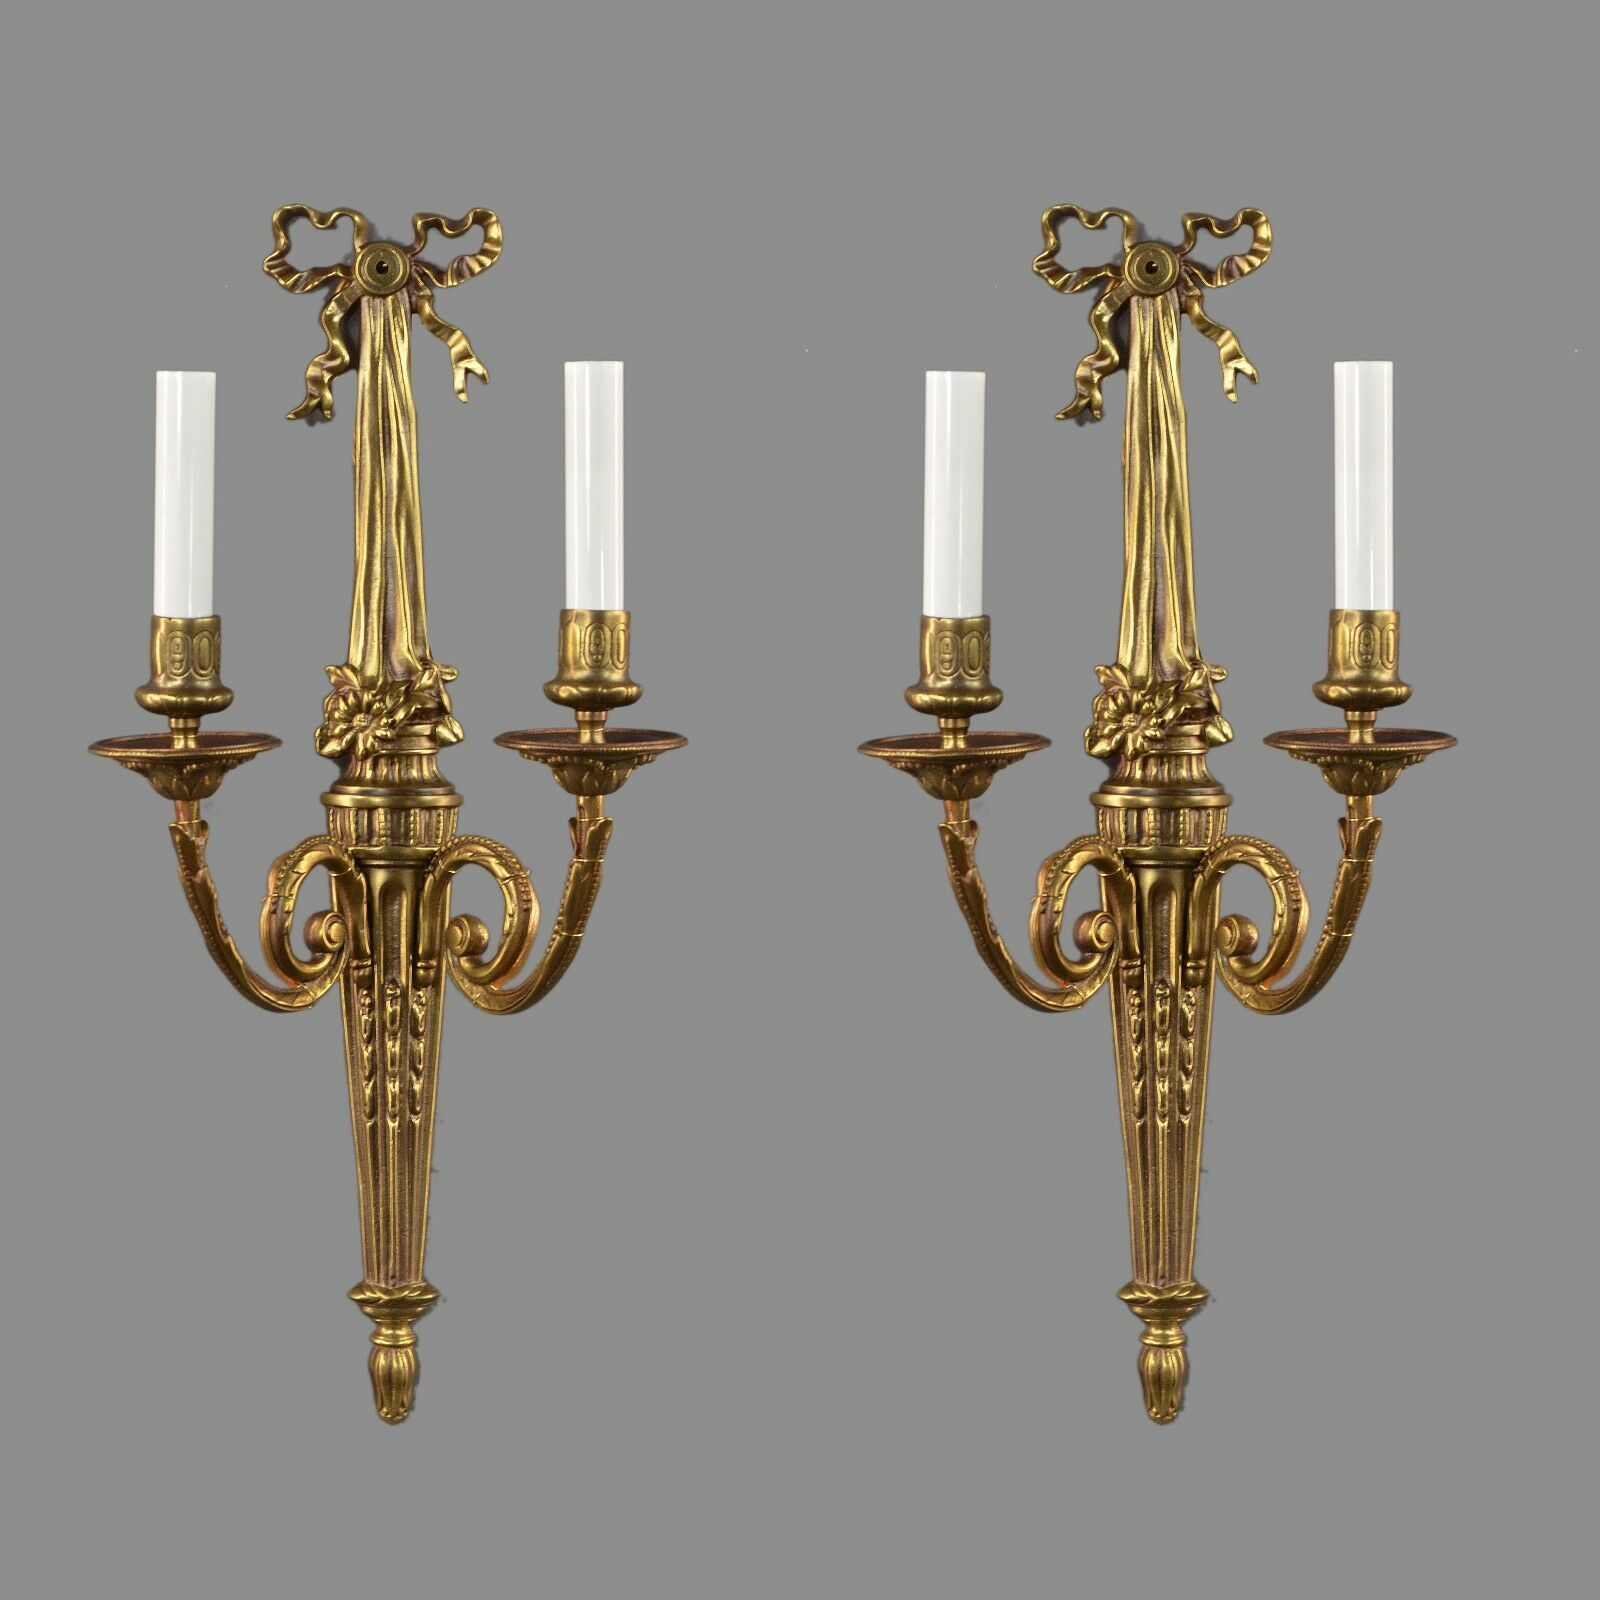 Italian Brass Regency French Style Sconces c1950 Vintage Antique Gold Ornate